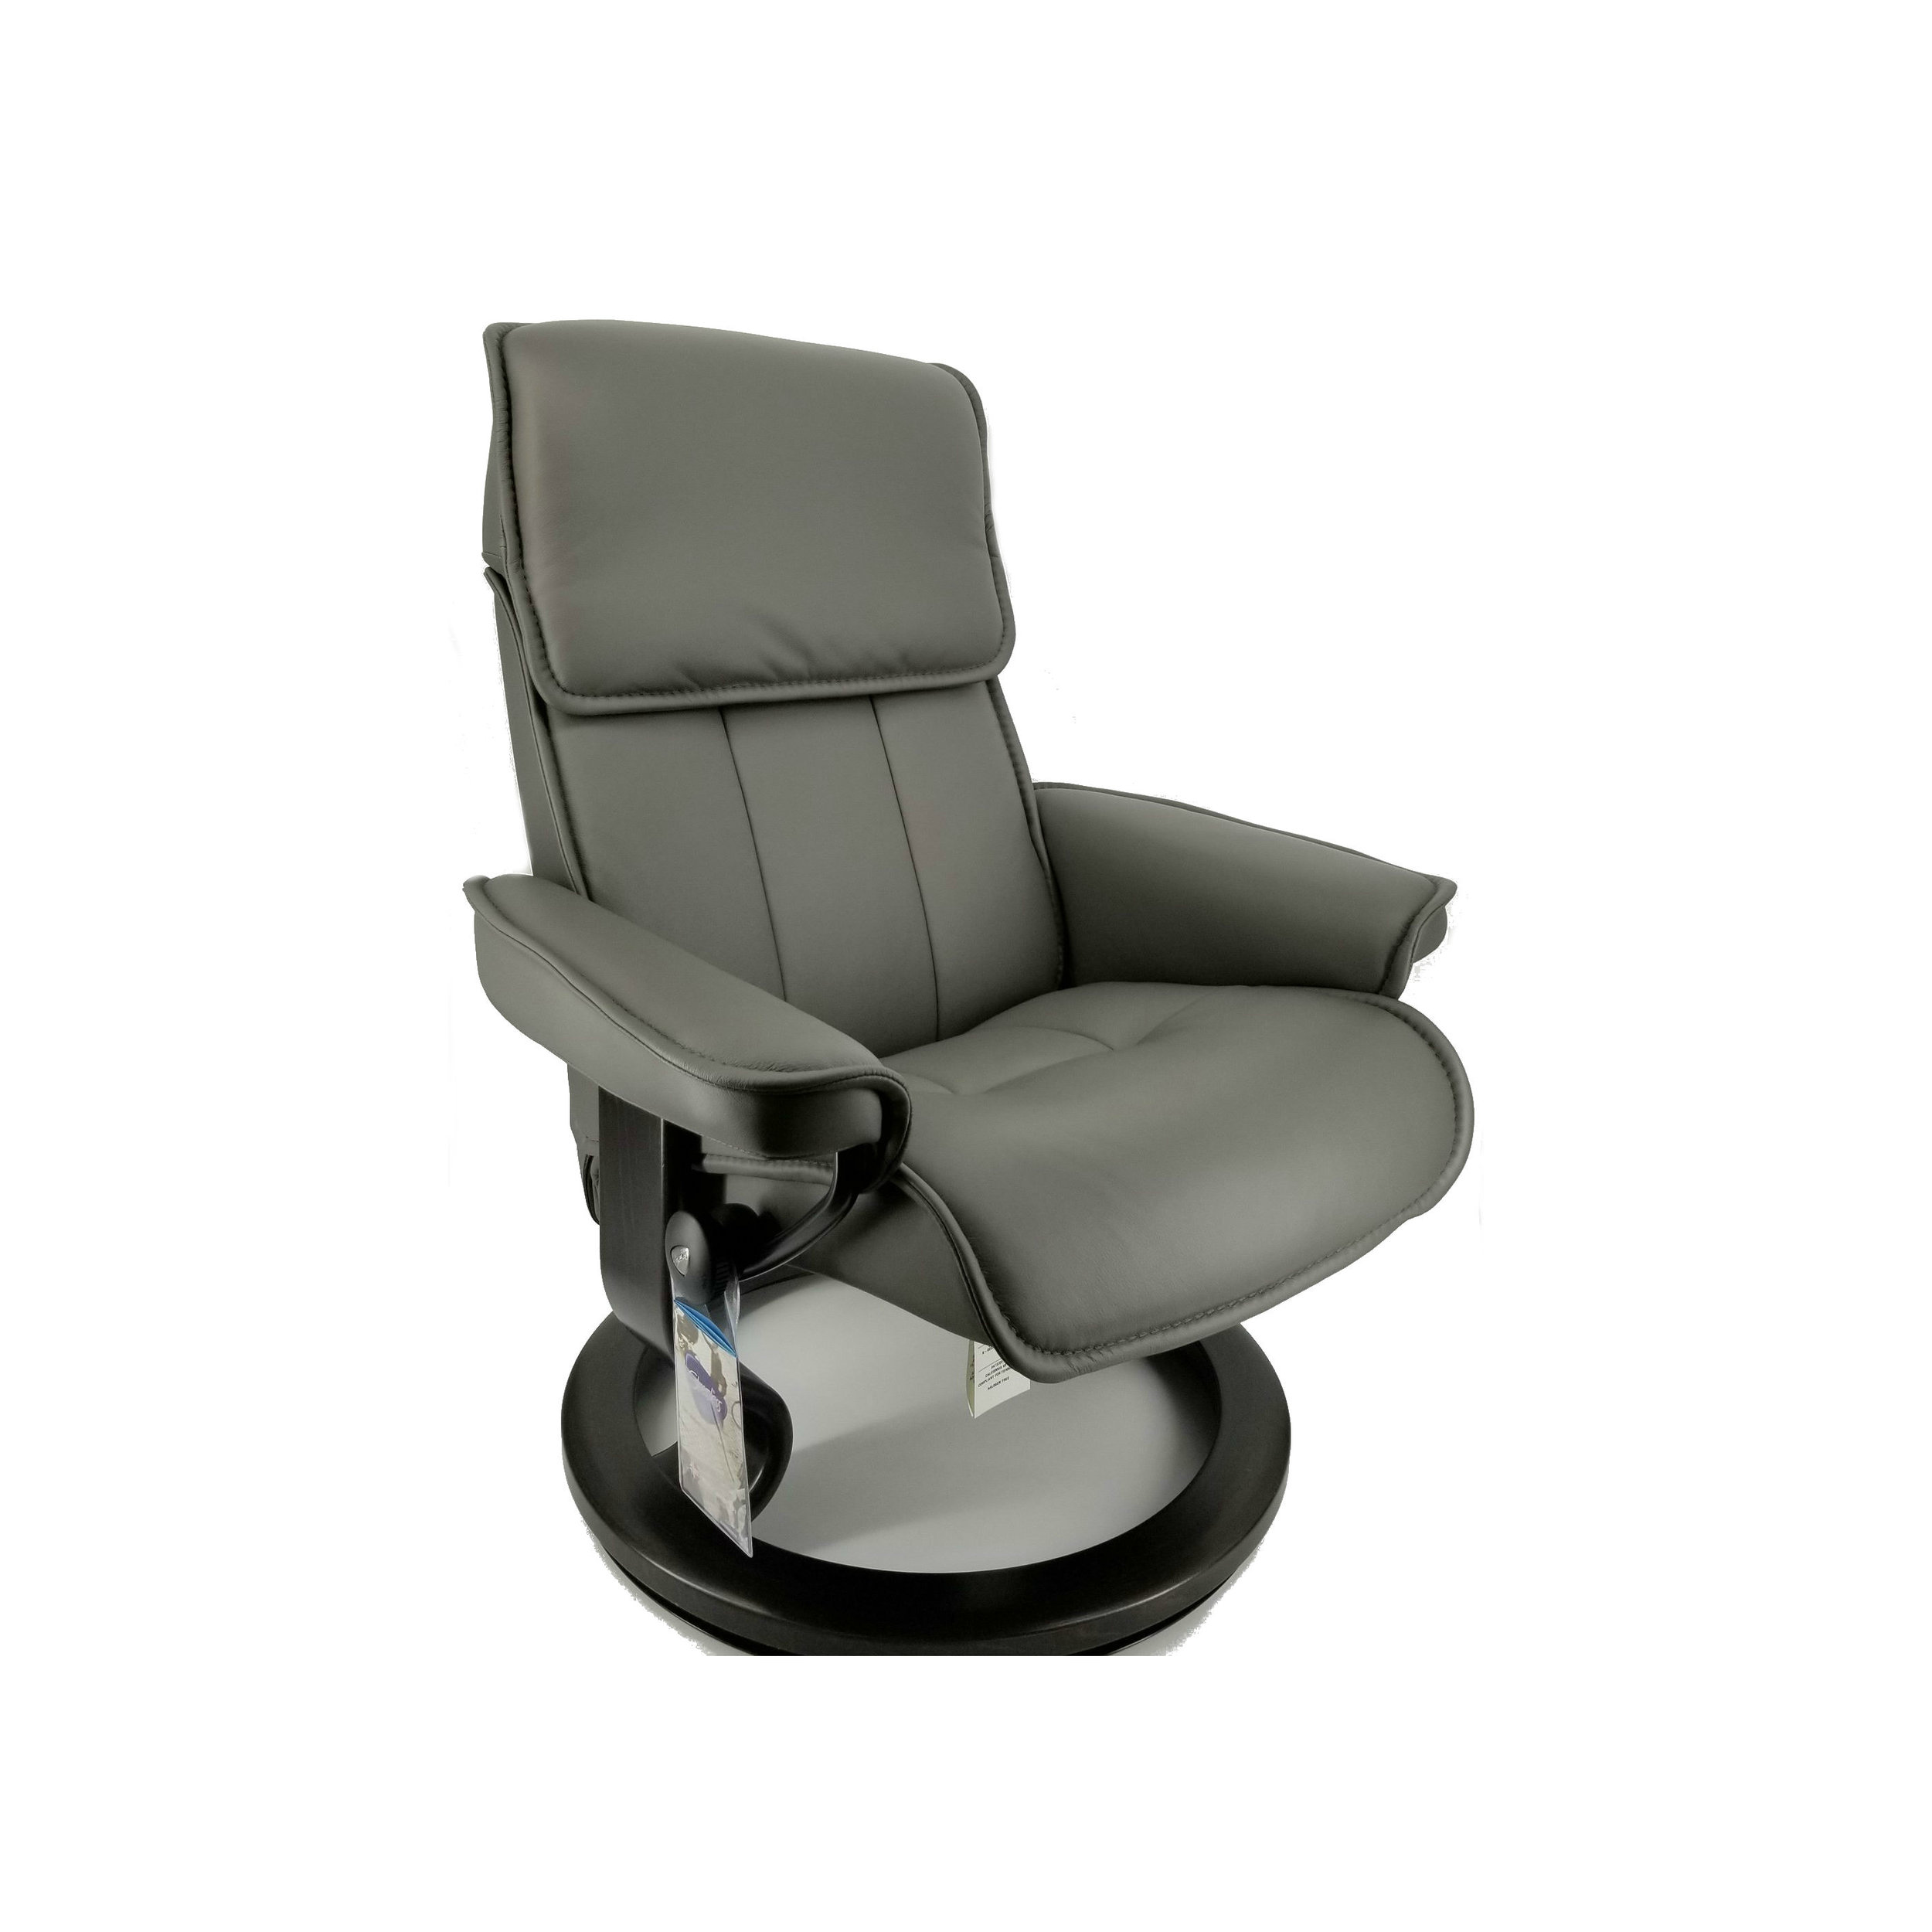 stressless chair sale transport chairs lightweight recliners clearance designer home comfort admiral